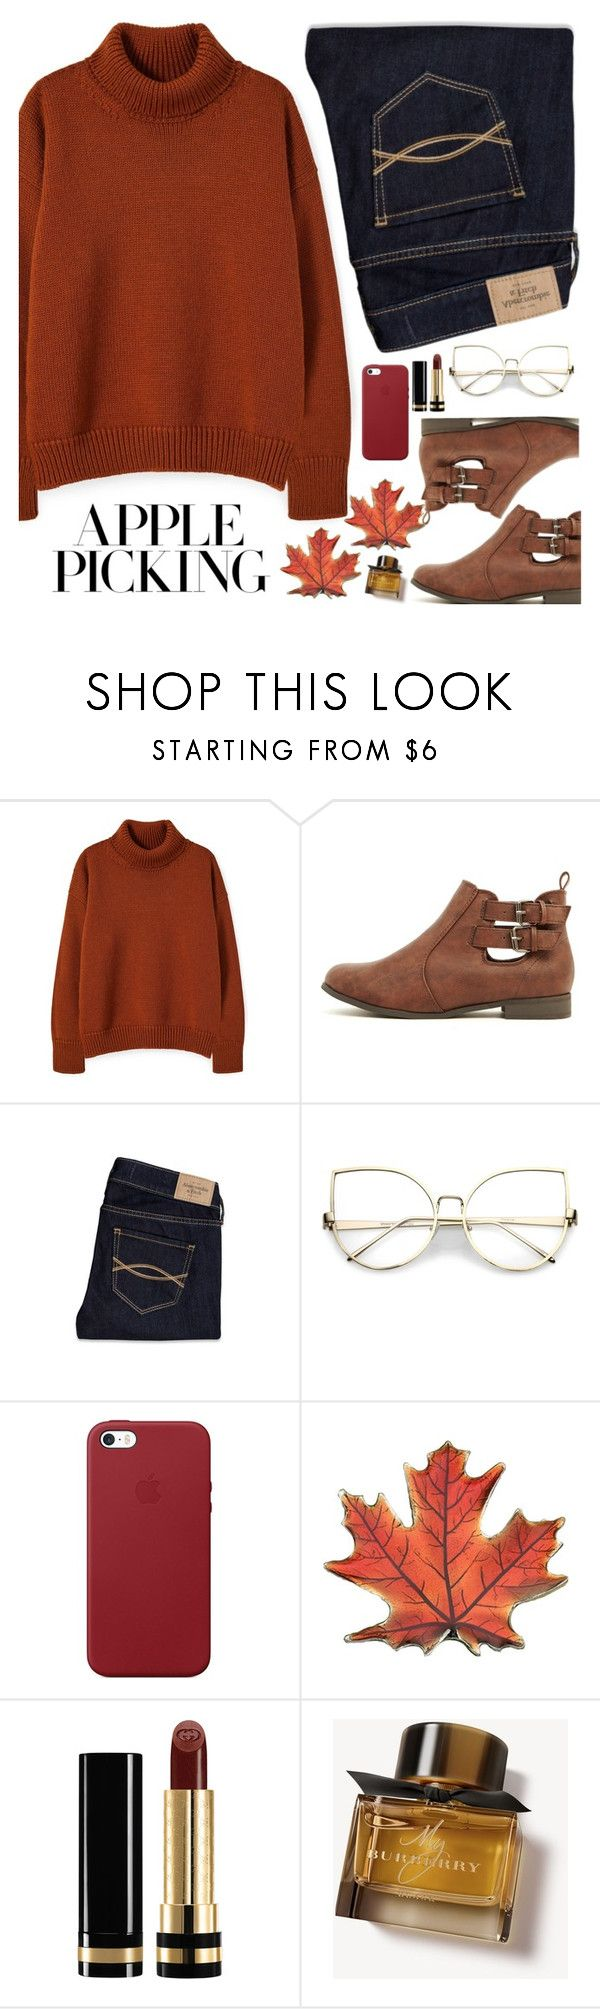 """Apple Picking"" by neon-moom ❤ liked on Polyvore featuring Abercrombie & Fitch, Apple, Gucci, Burberry, Fall, Sweater, booties and applepicking"